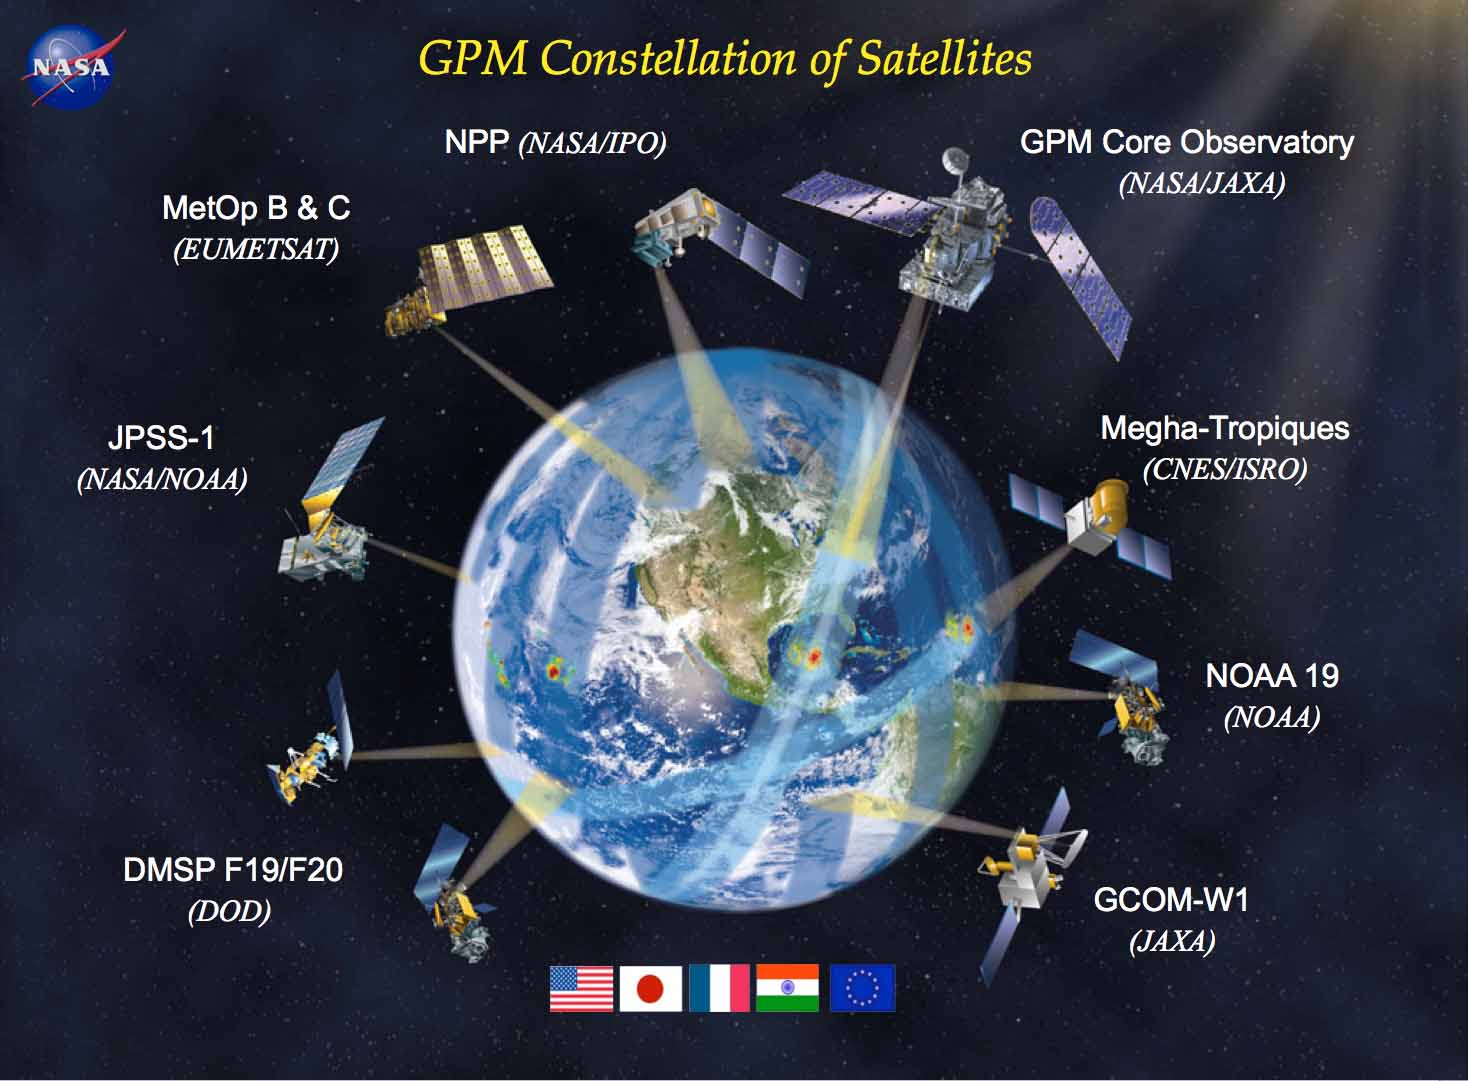 gpm_constellation_lres